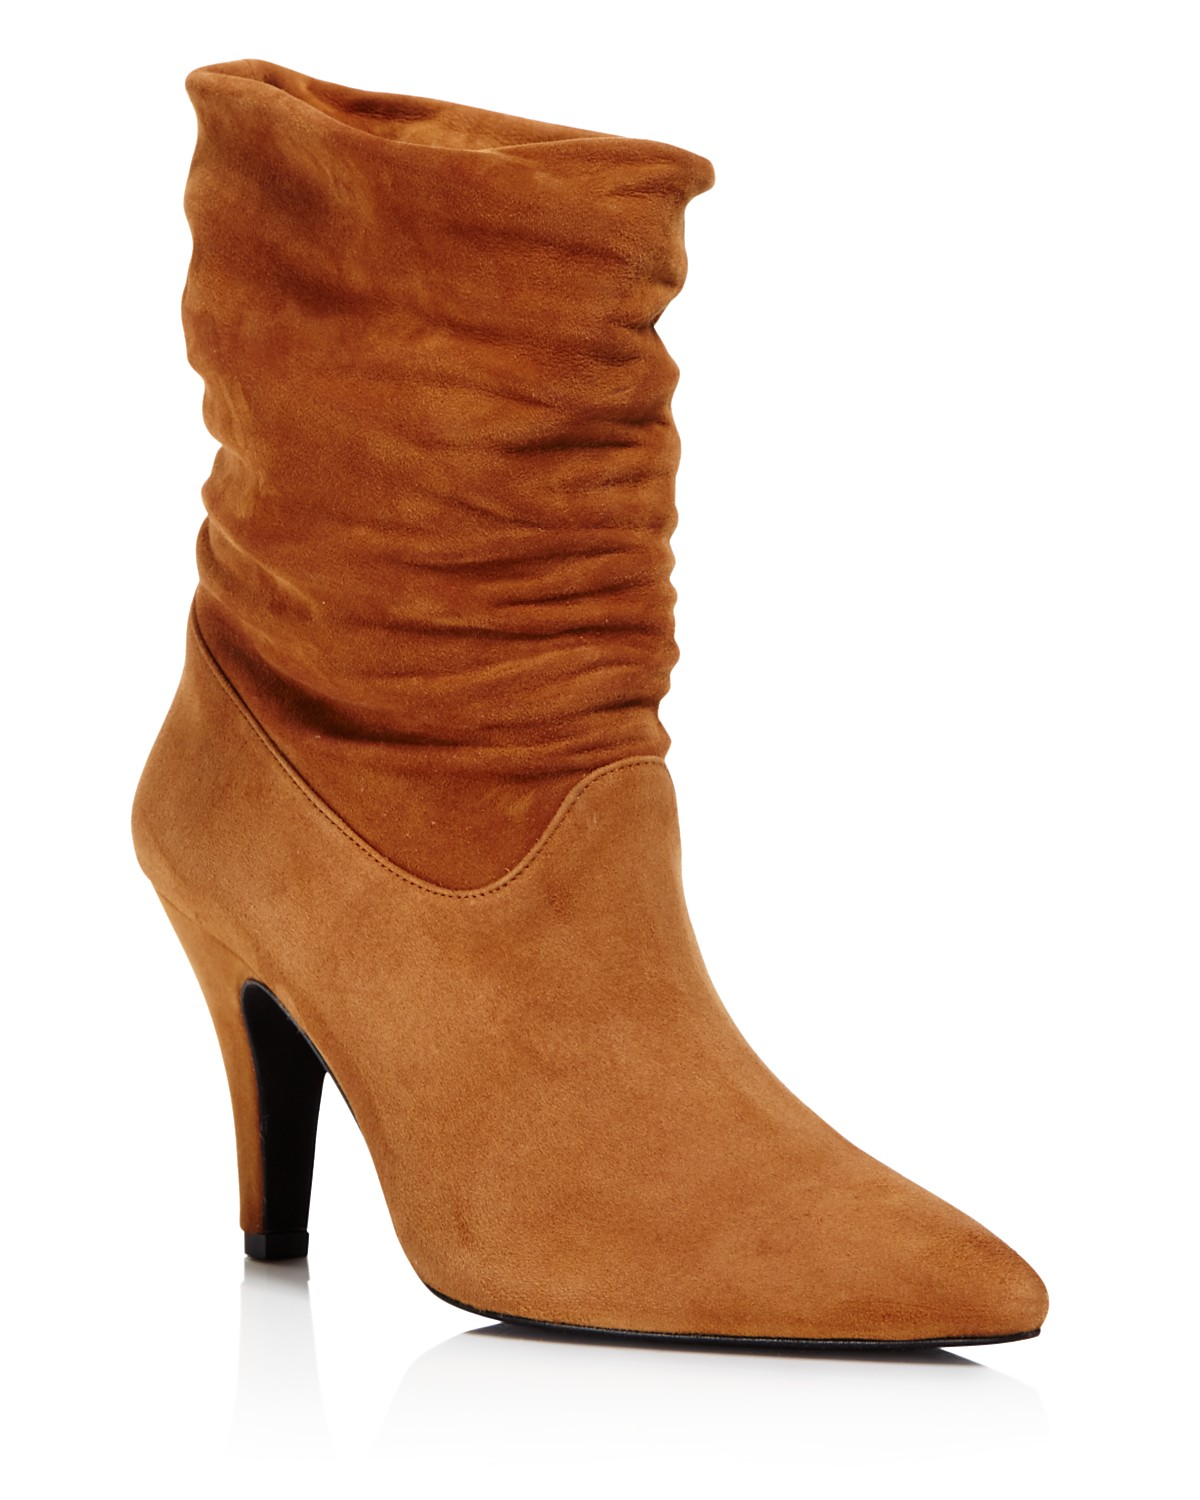 ANINE BING Women's Presley Suede Slouchy Mid Calf Booties kn0rx